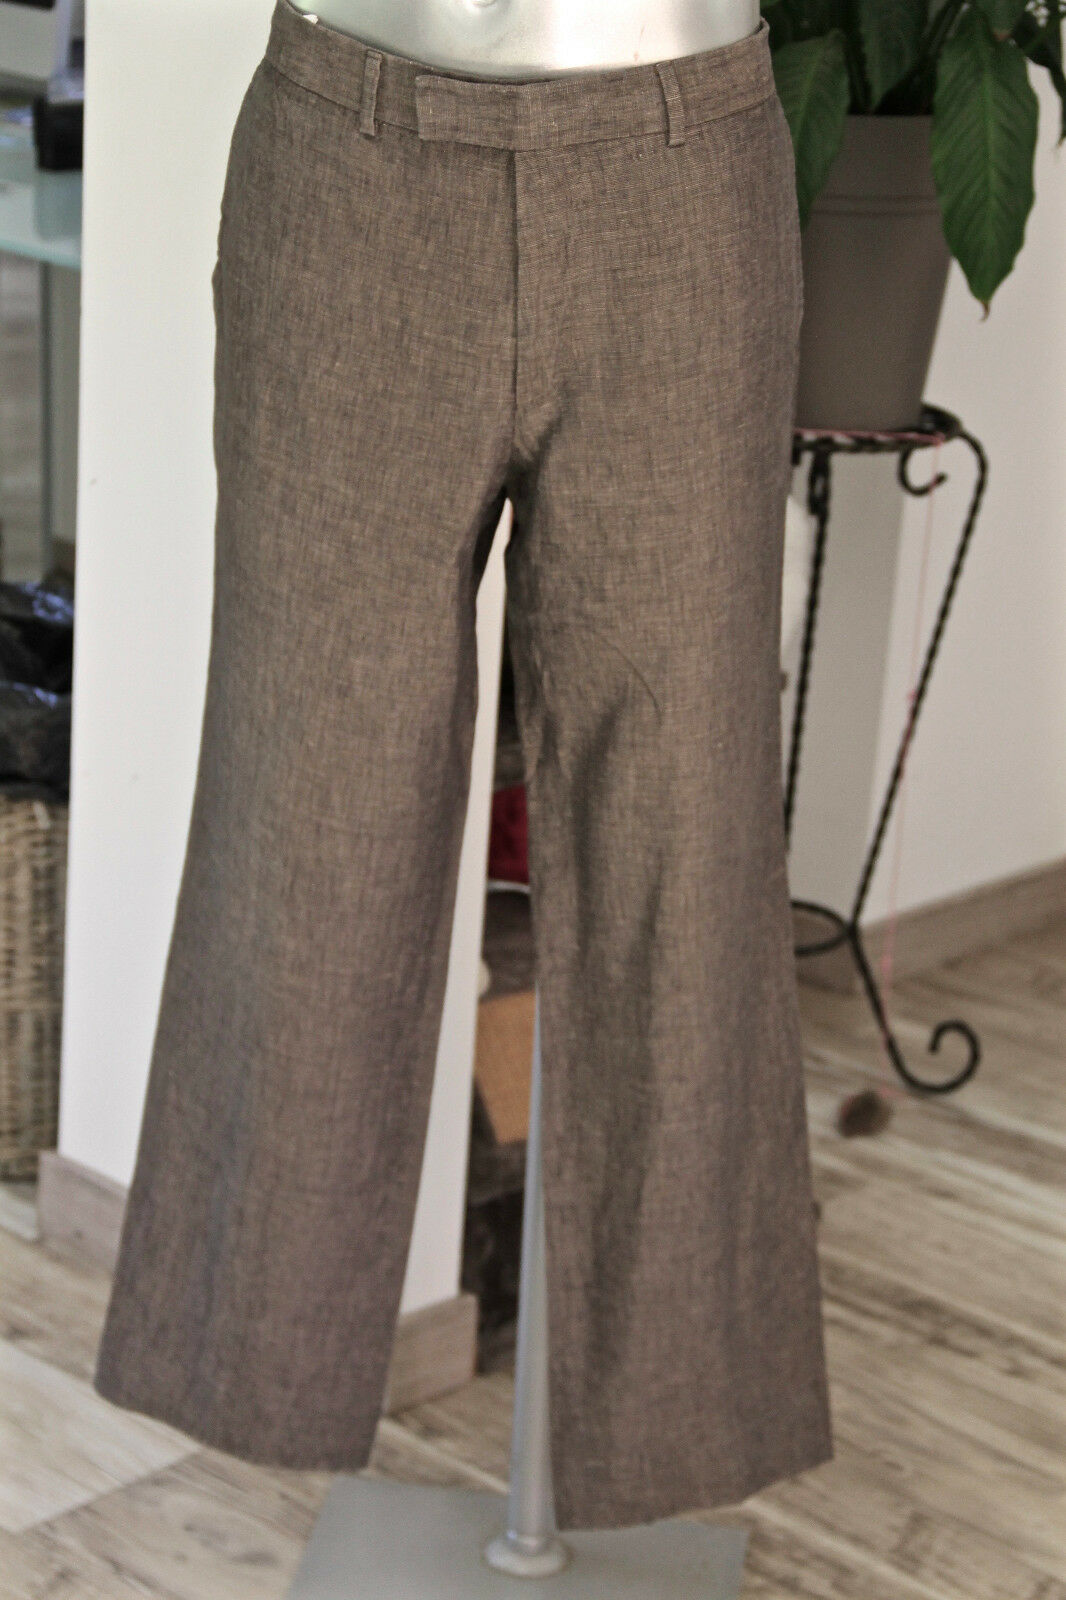 Trousers Suit Linen Grey Hugo Boss Size 44-46 Fr ( Grams 52) Mint